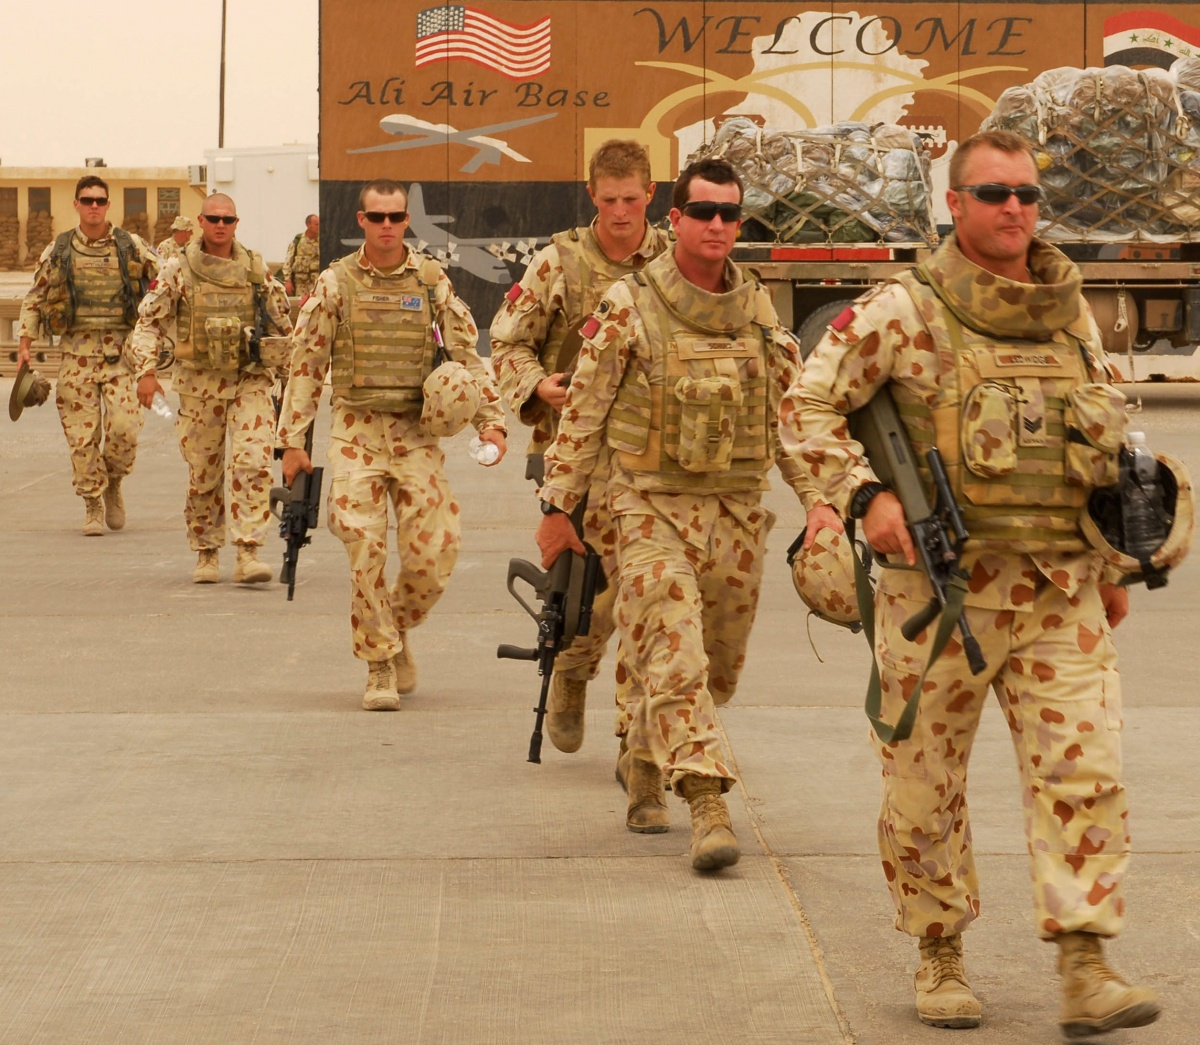 Australian soldiers in Iraq board an aircraft home. Source: AAP.